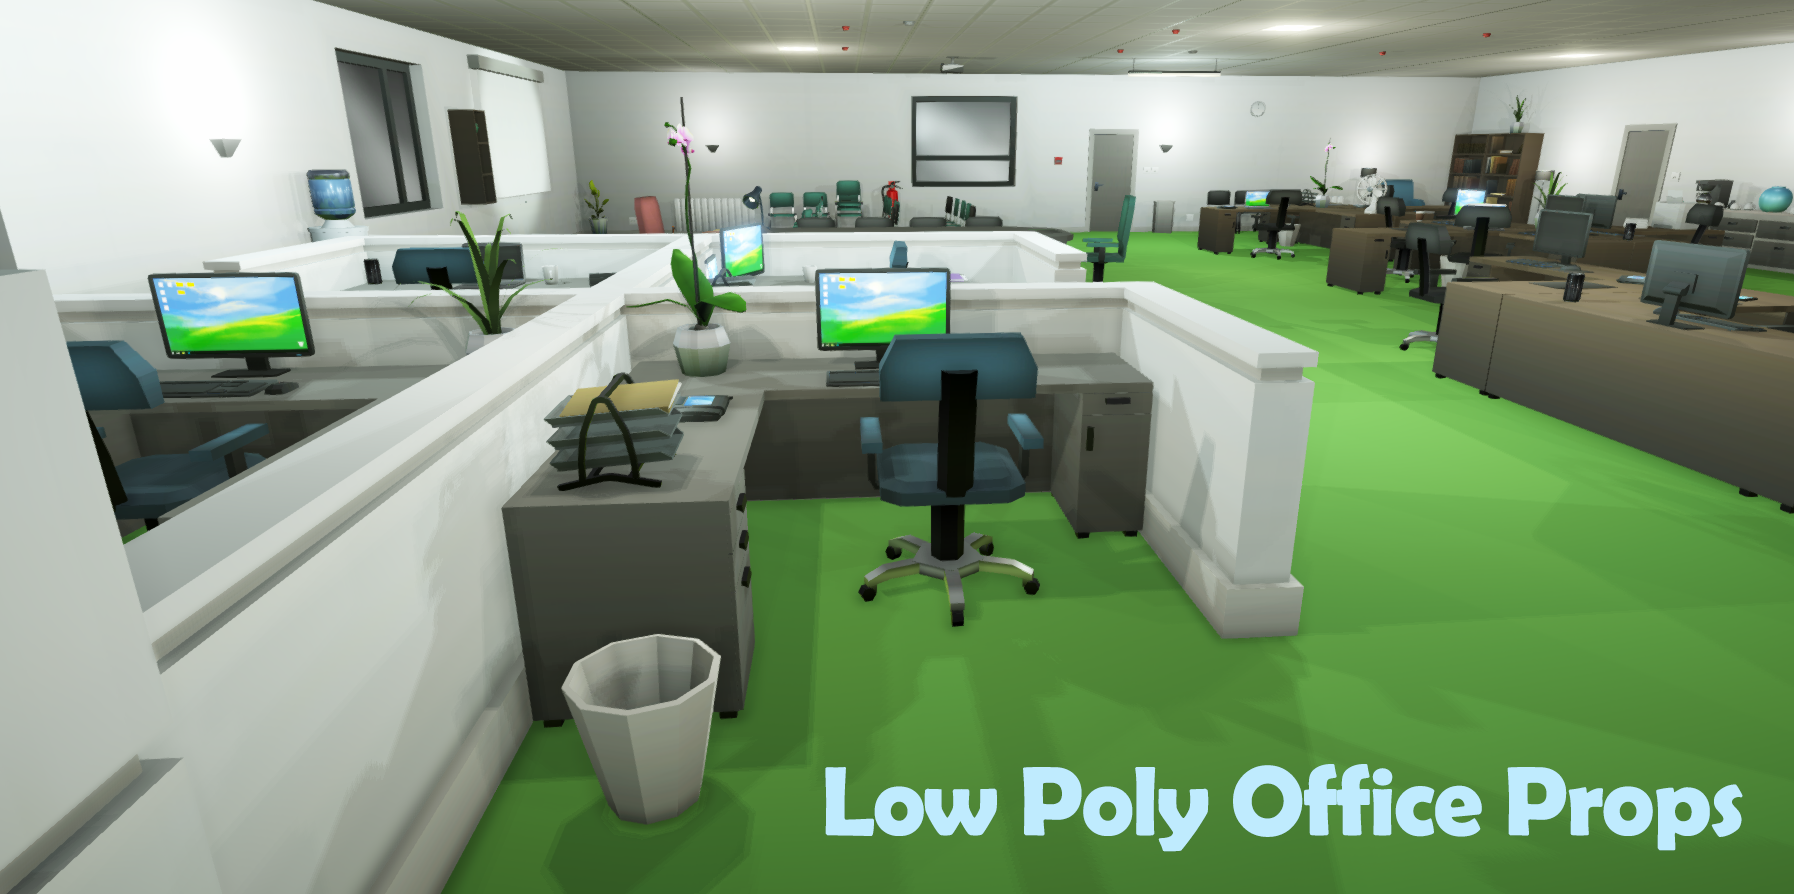 Low Poly Office Props